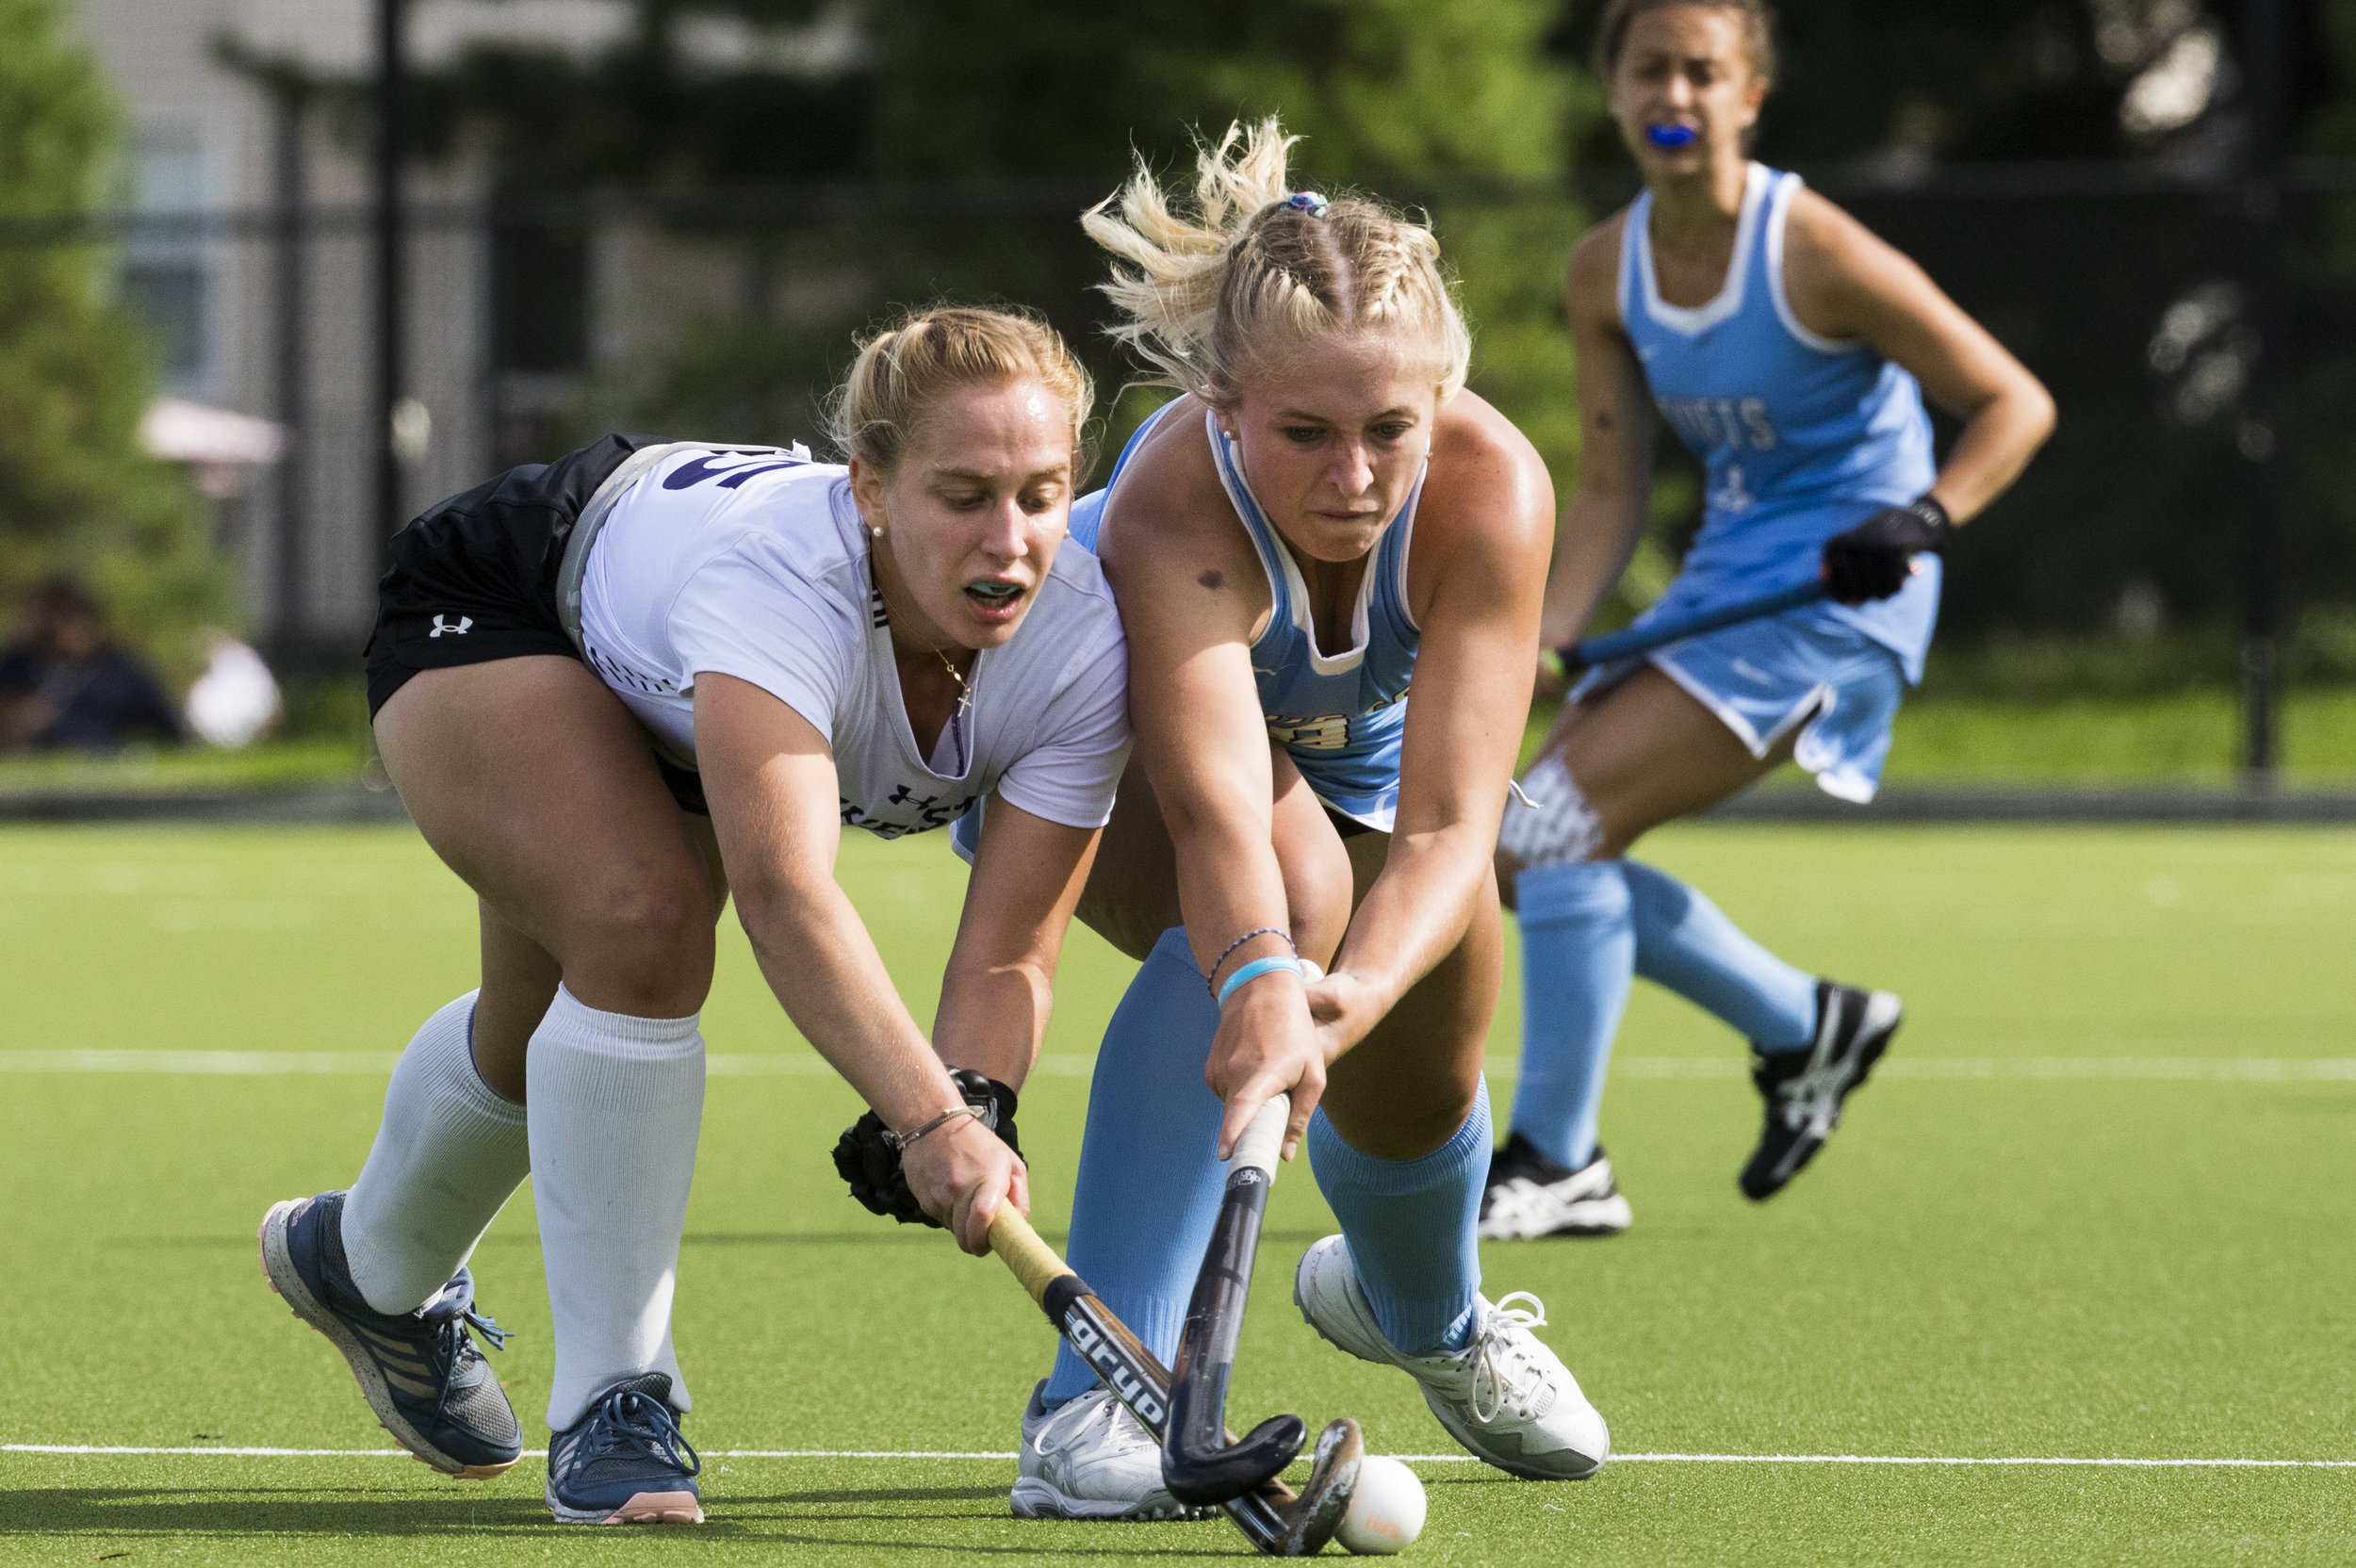 180929_5923_fieldhockey086.jpg